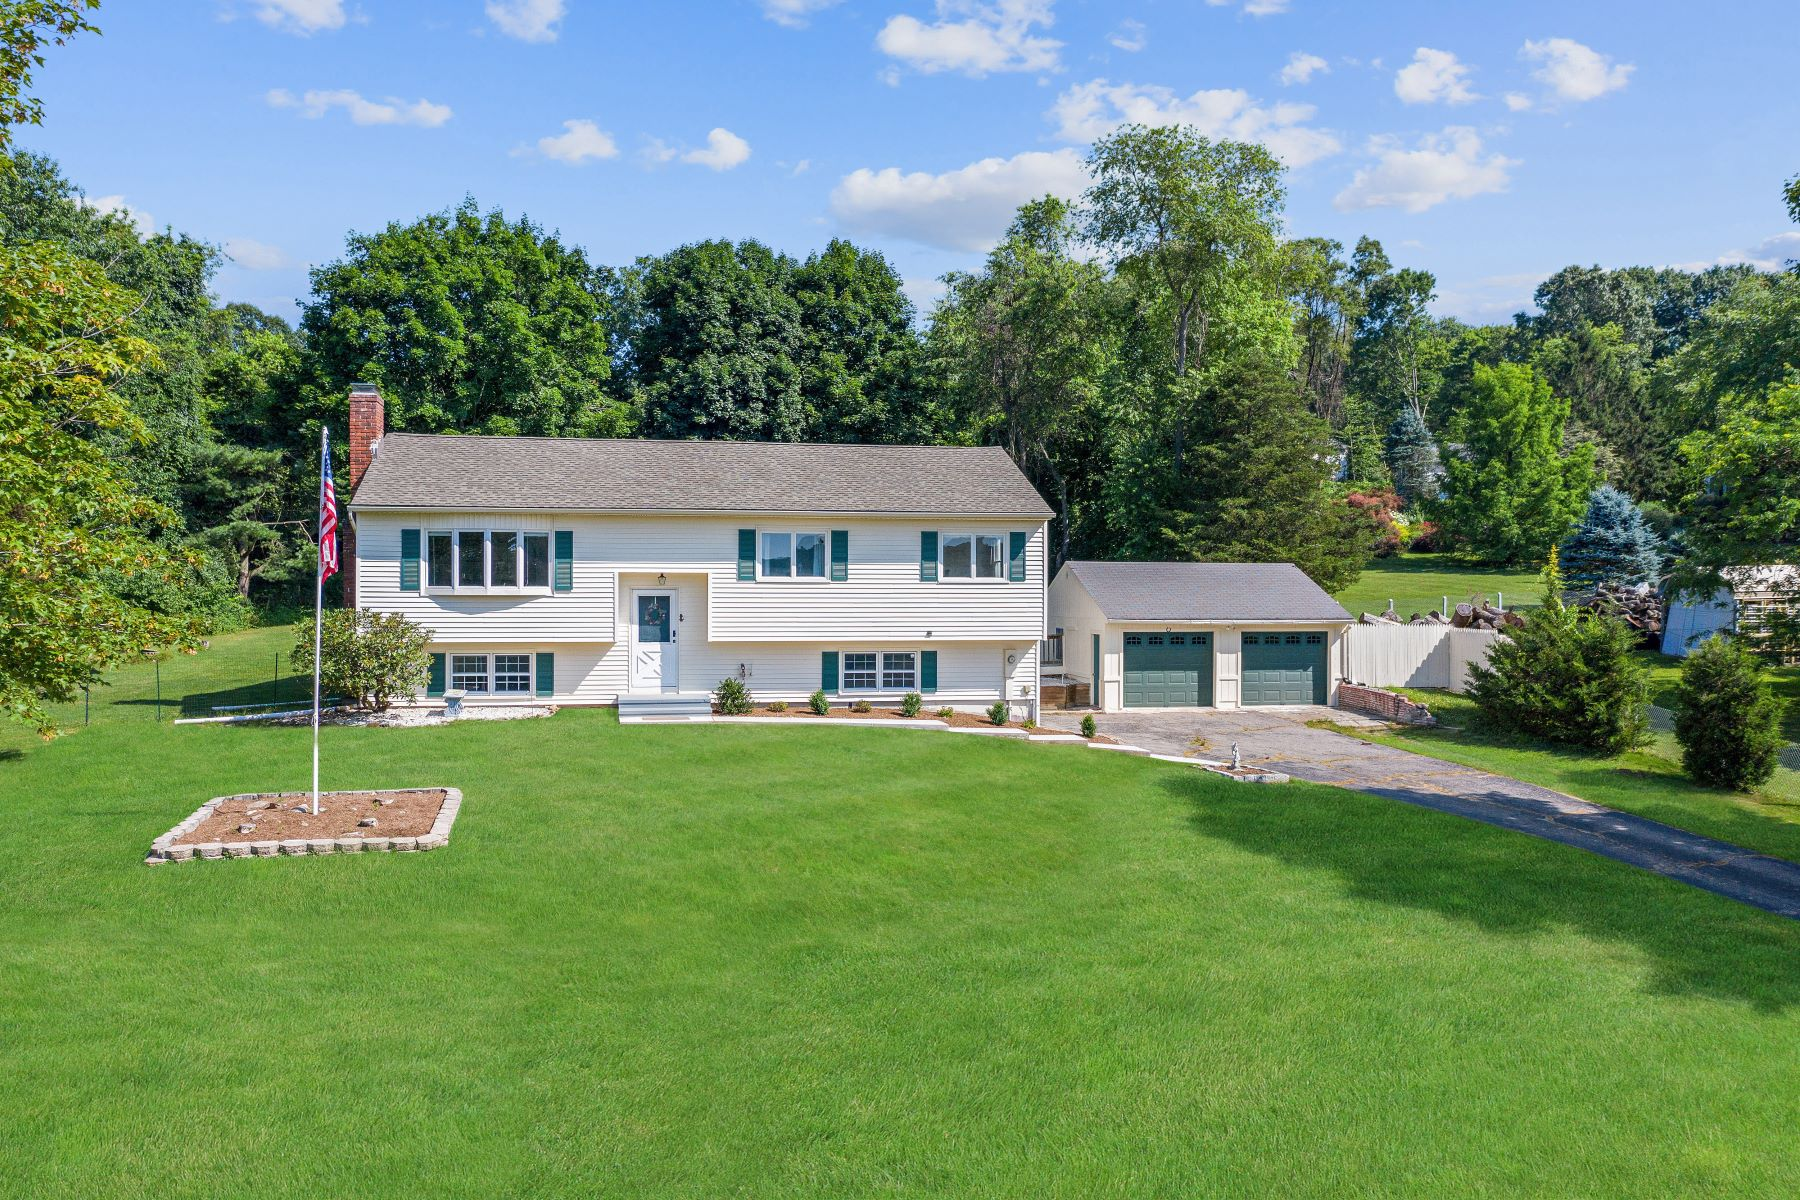 Single Family Homes for Sale at Nicely Appointed 34 Deer Hill Road Southbury, Connecticut 06488 United States